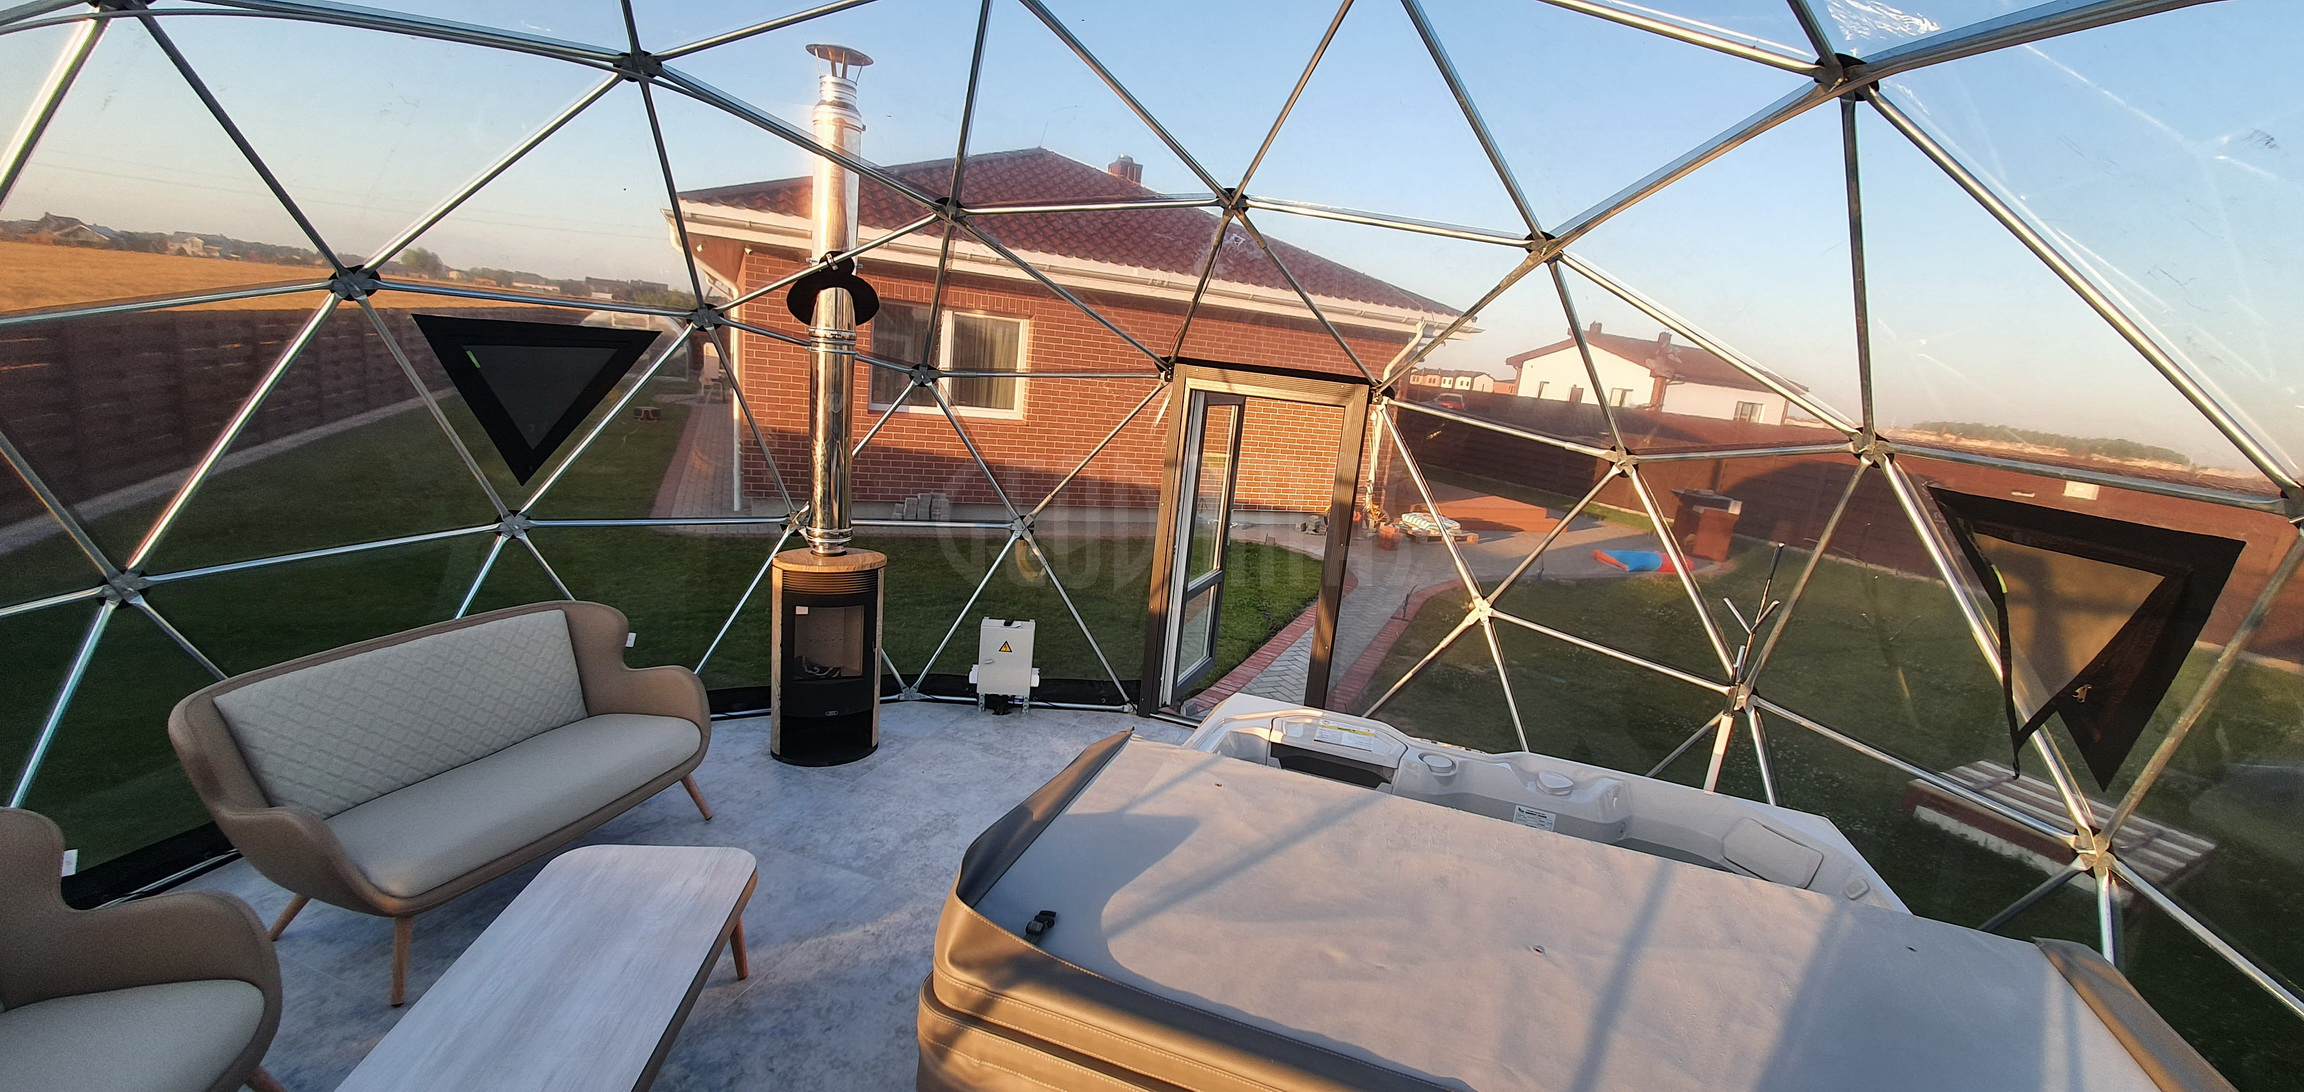 28m2 ⌀6m SPA Dome – Full Transparent | Klaipeda